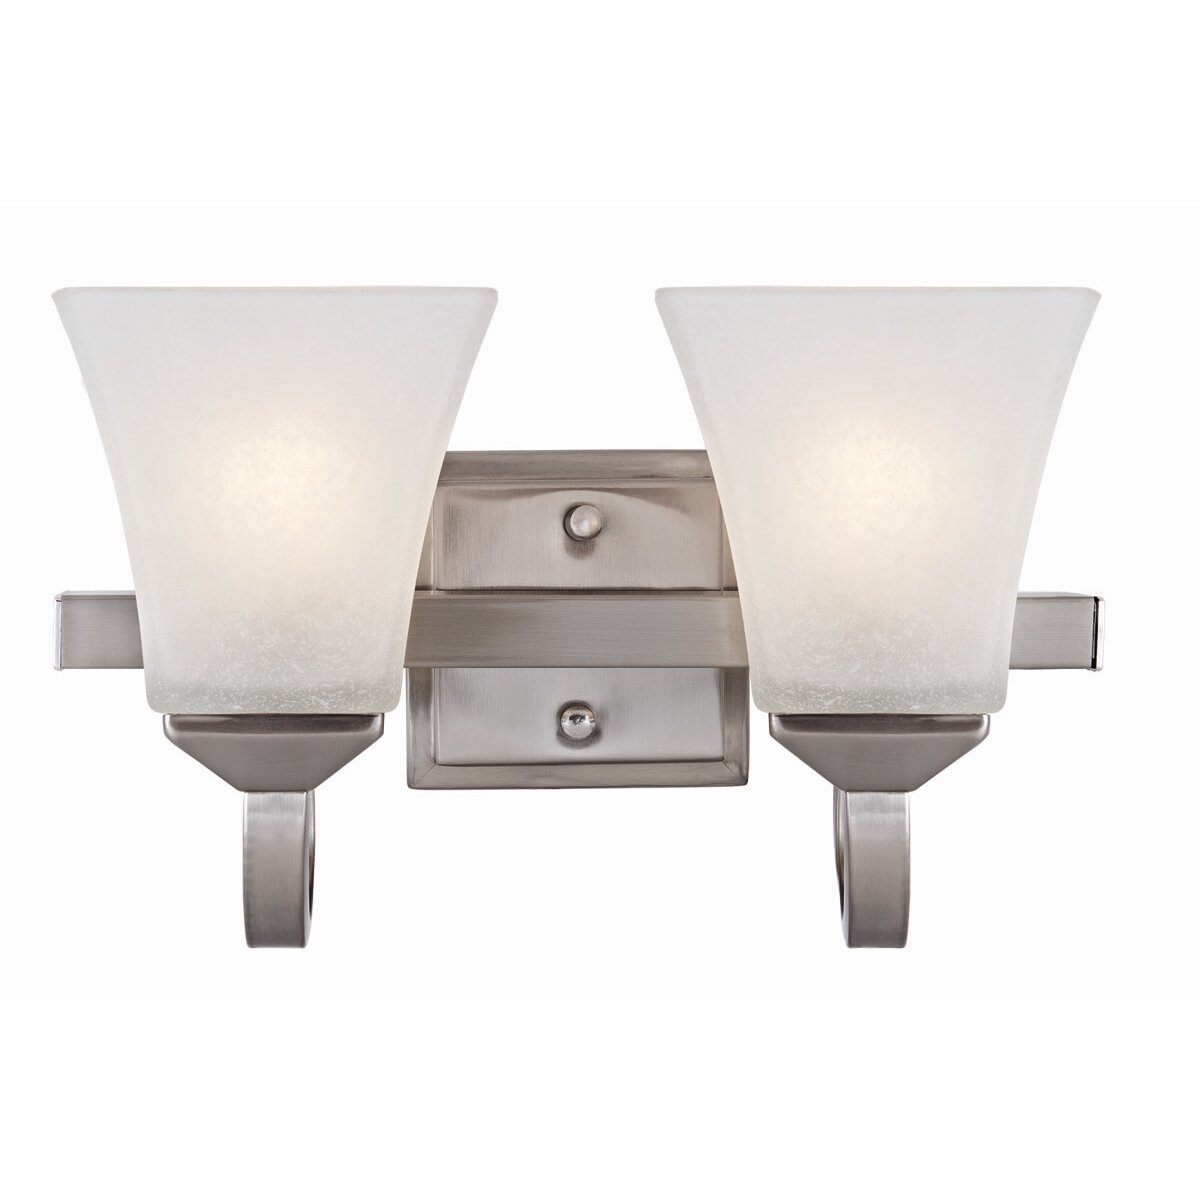 Design House Torino 2 Light Bath Vanity Light & Reviews Wayfair